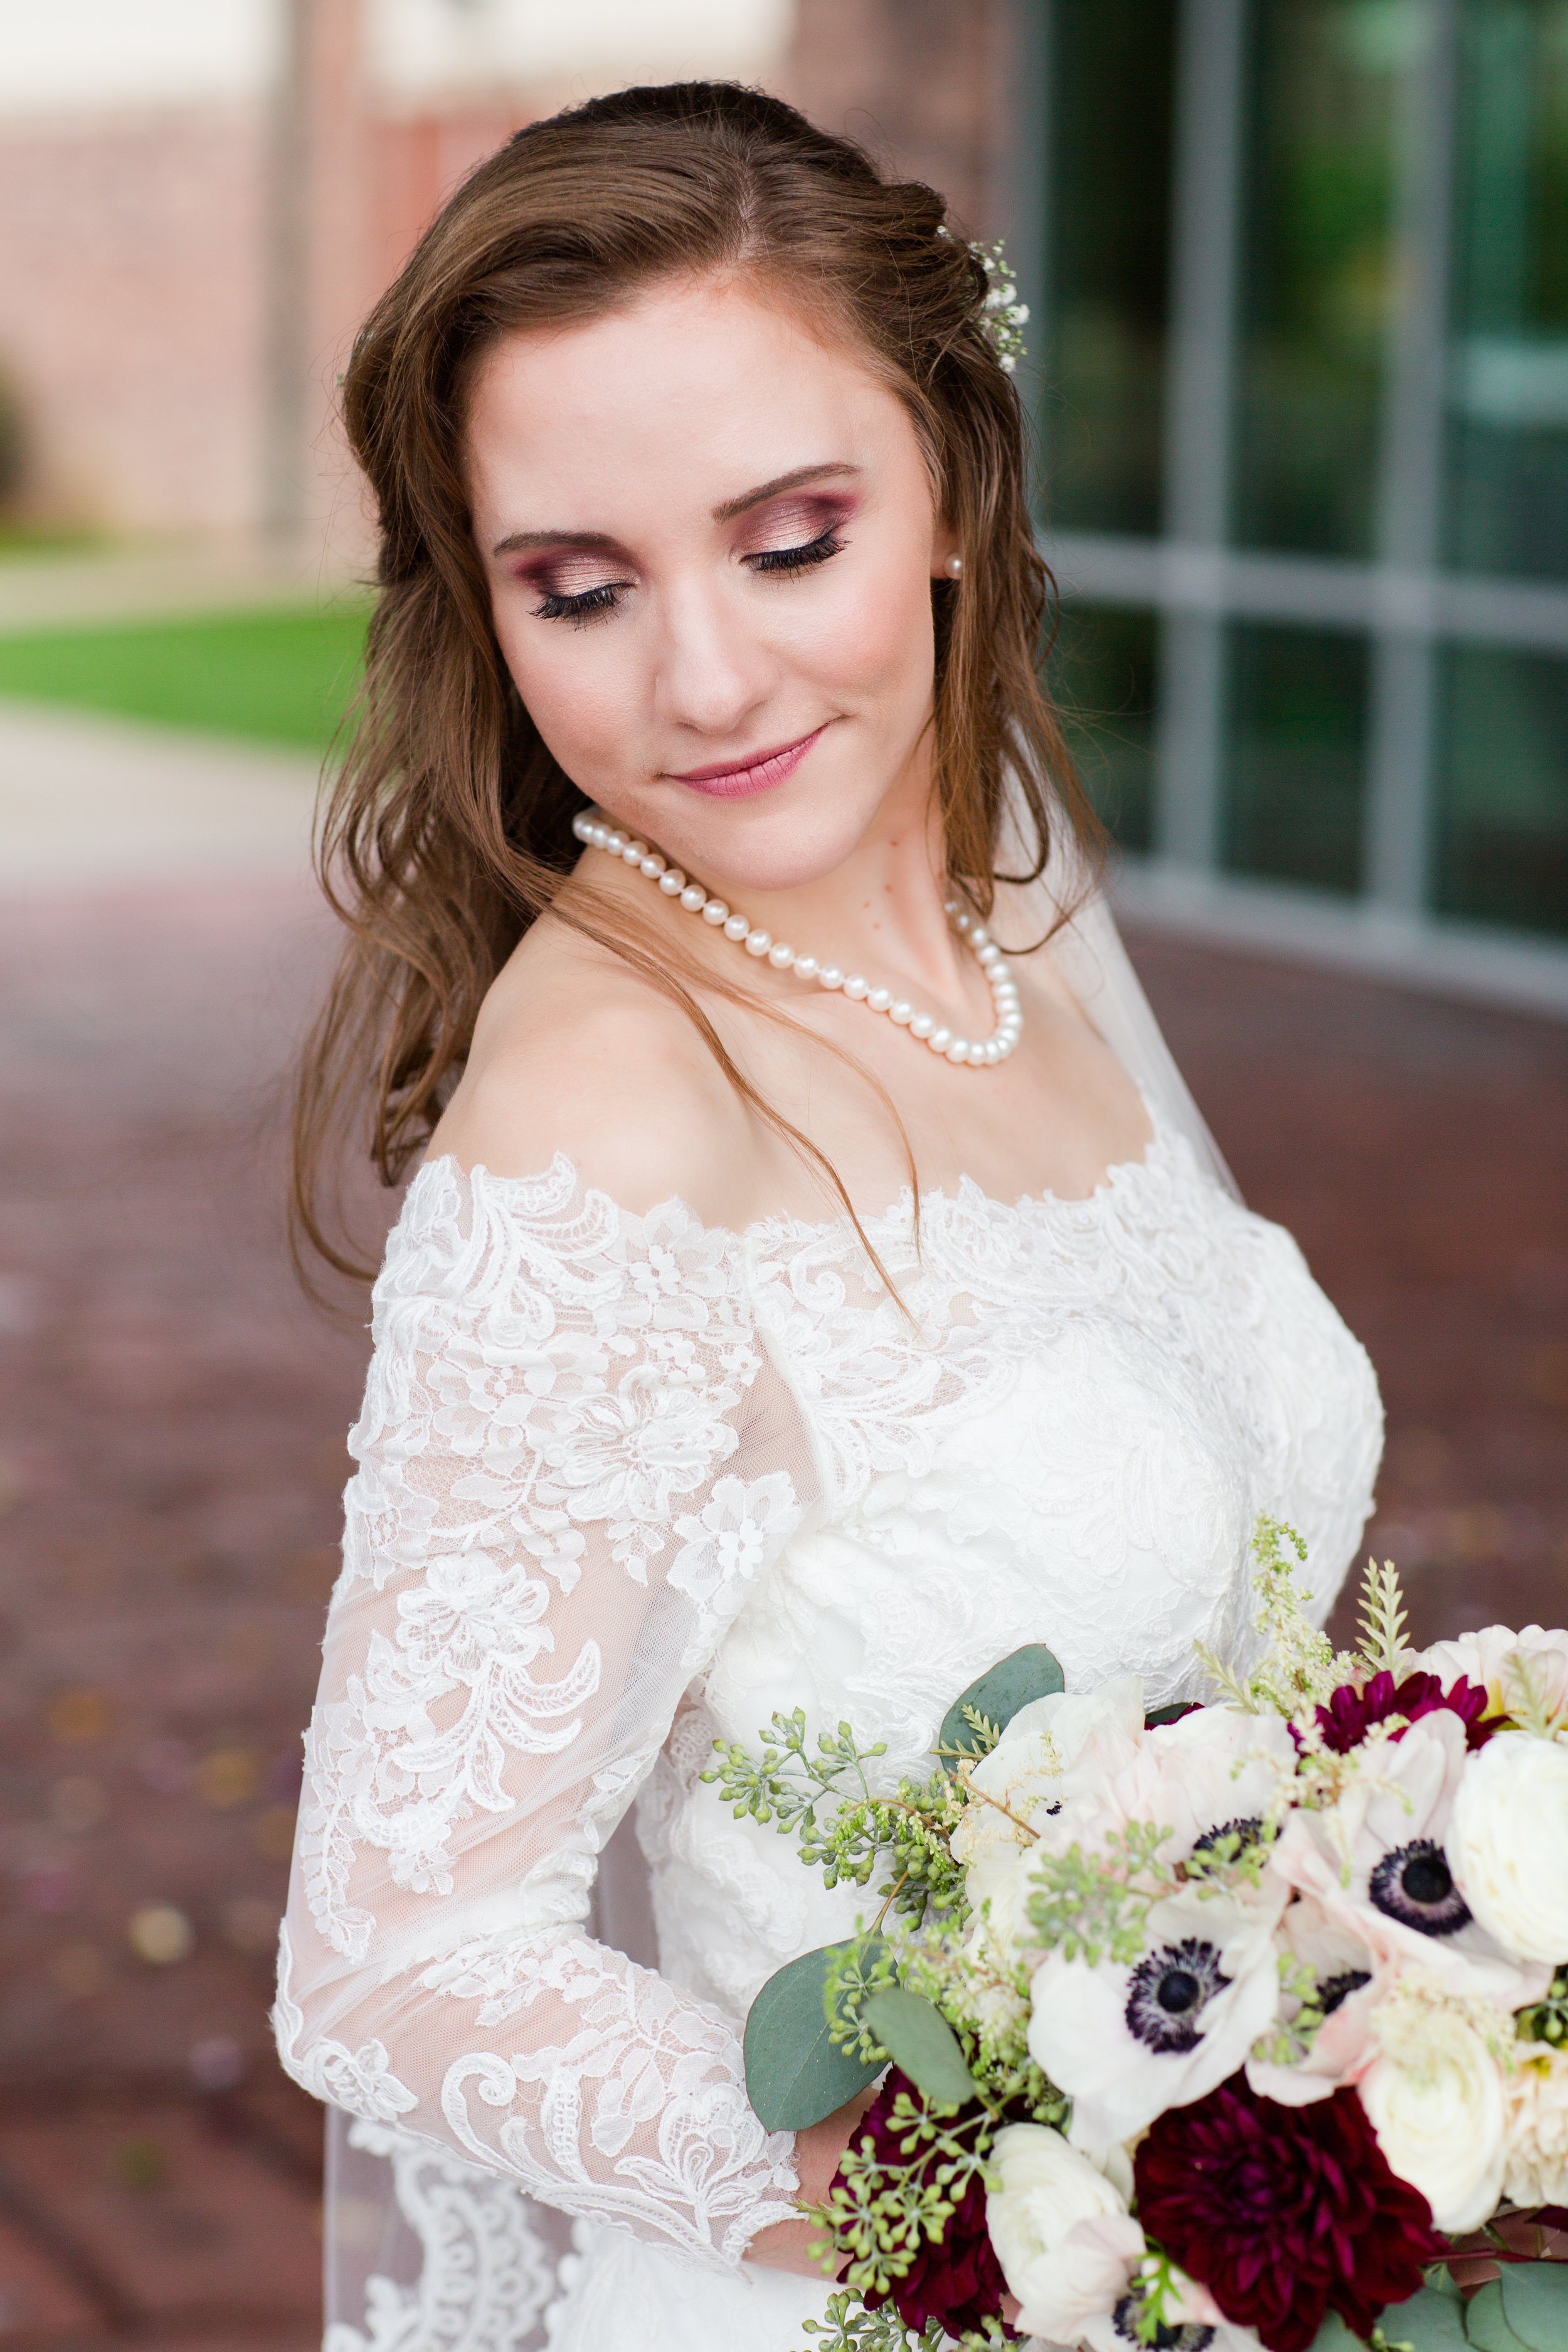 Komorebiphotography-Fineartphotography-er-MissouriWedding-48.jpg